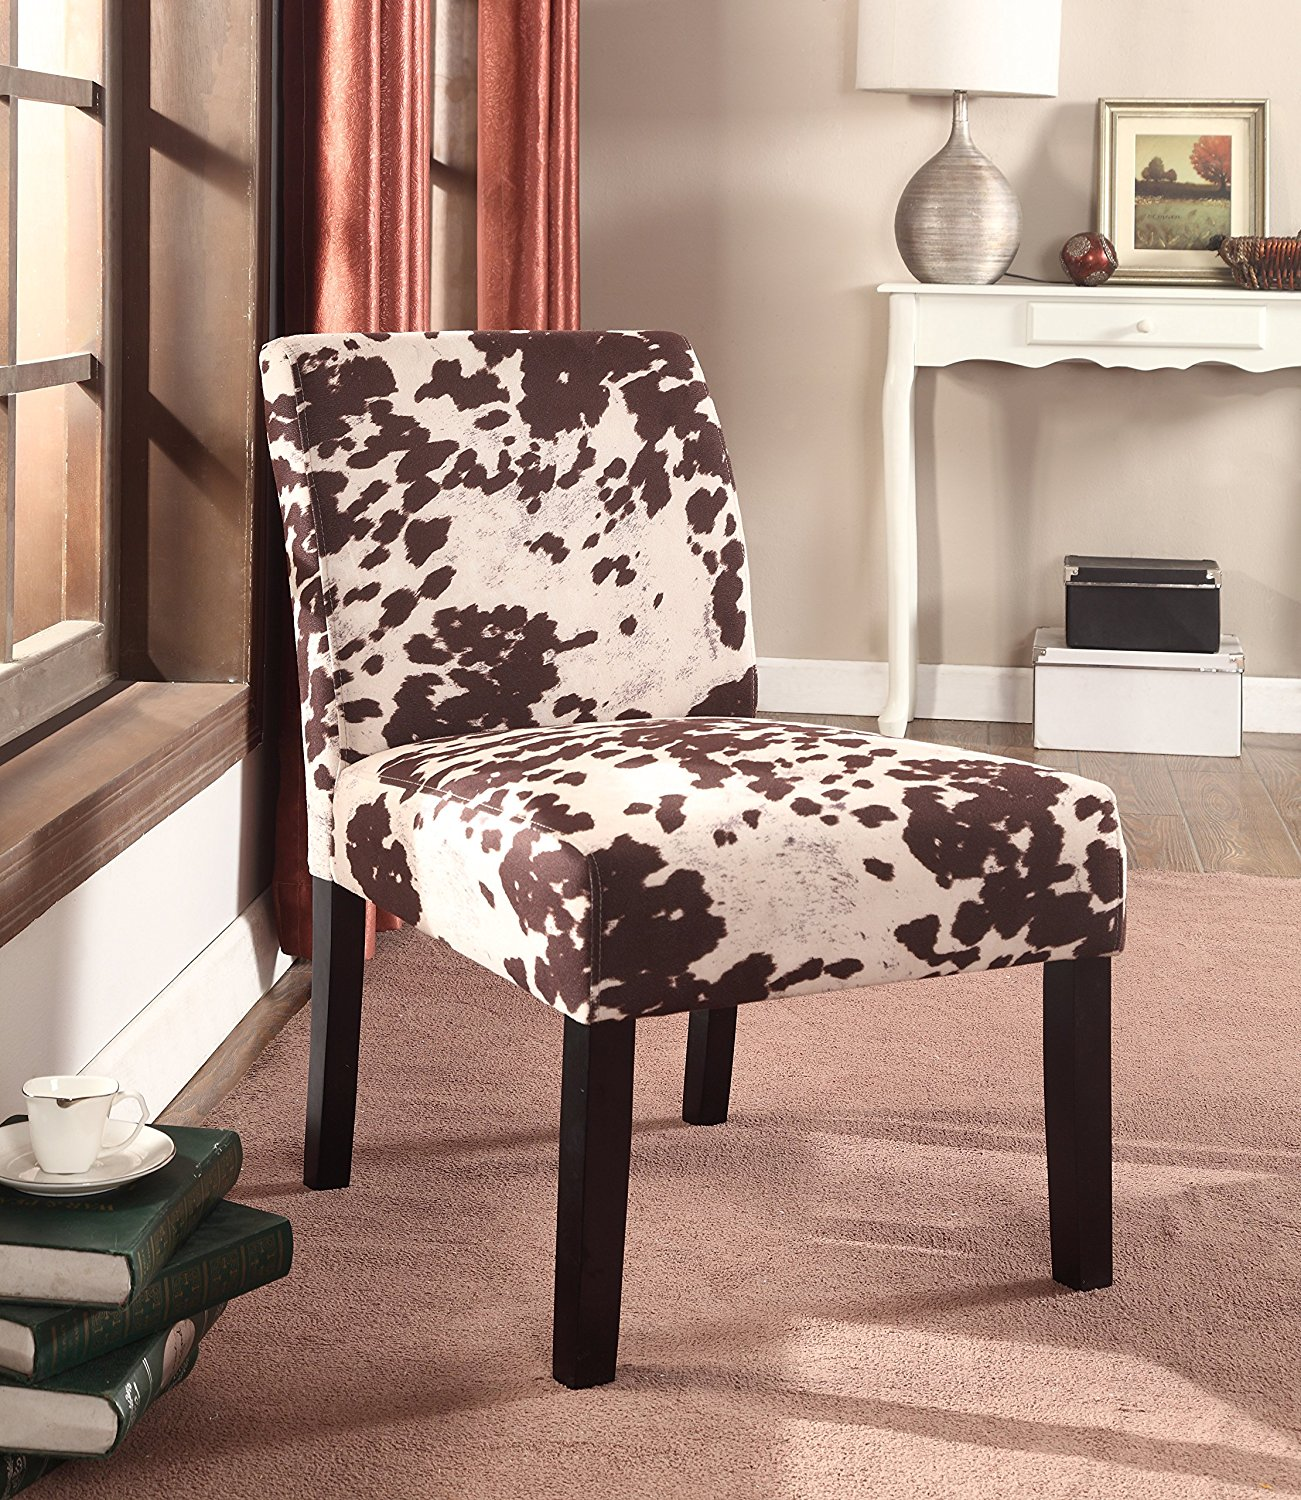 Container Furniture Direct Grace Collection Contemporary Armless Upholstered Cowhide Fabric Accent Chair, Set of 2, Brown/Beige